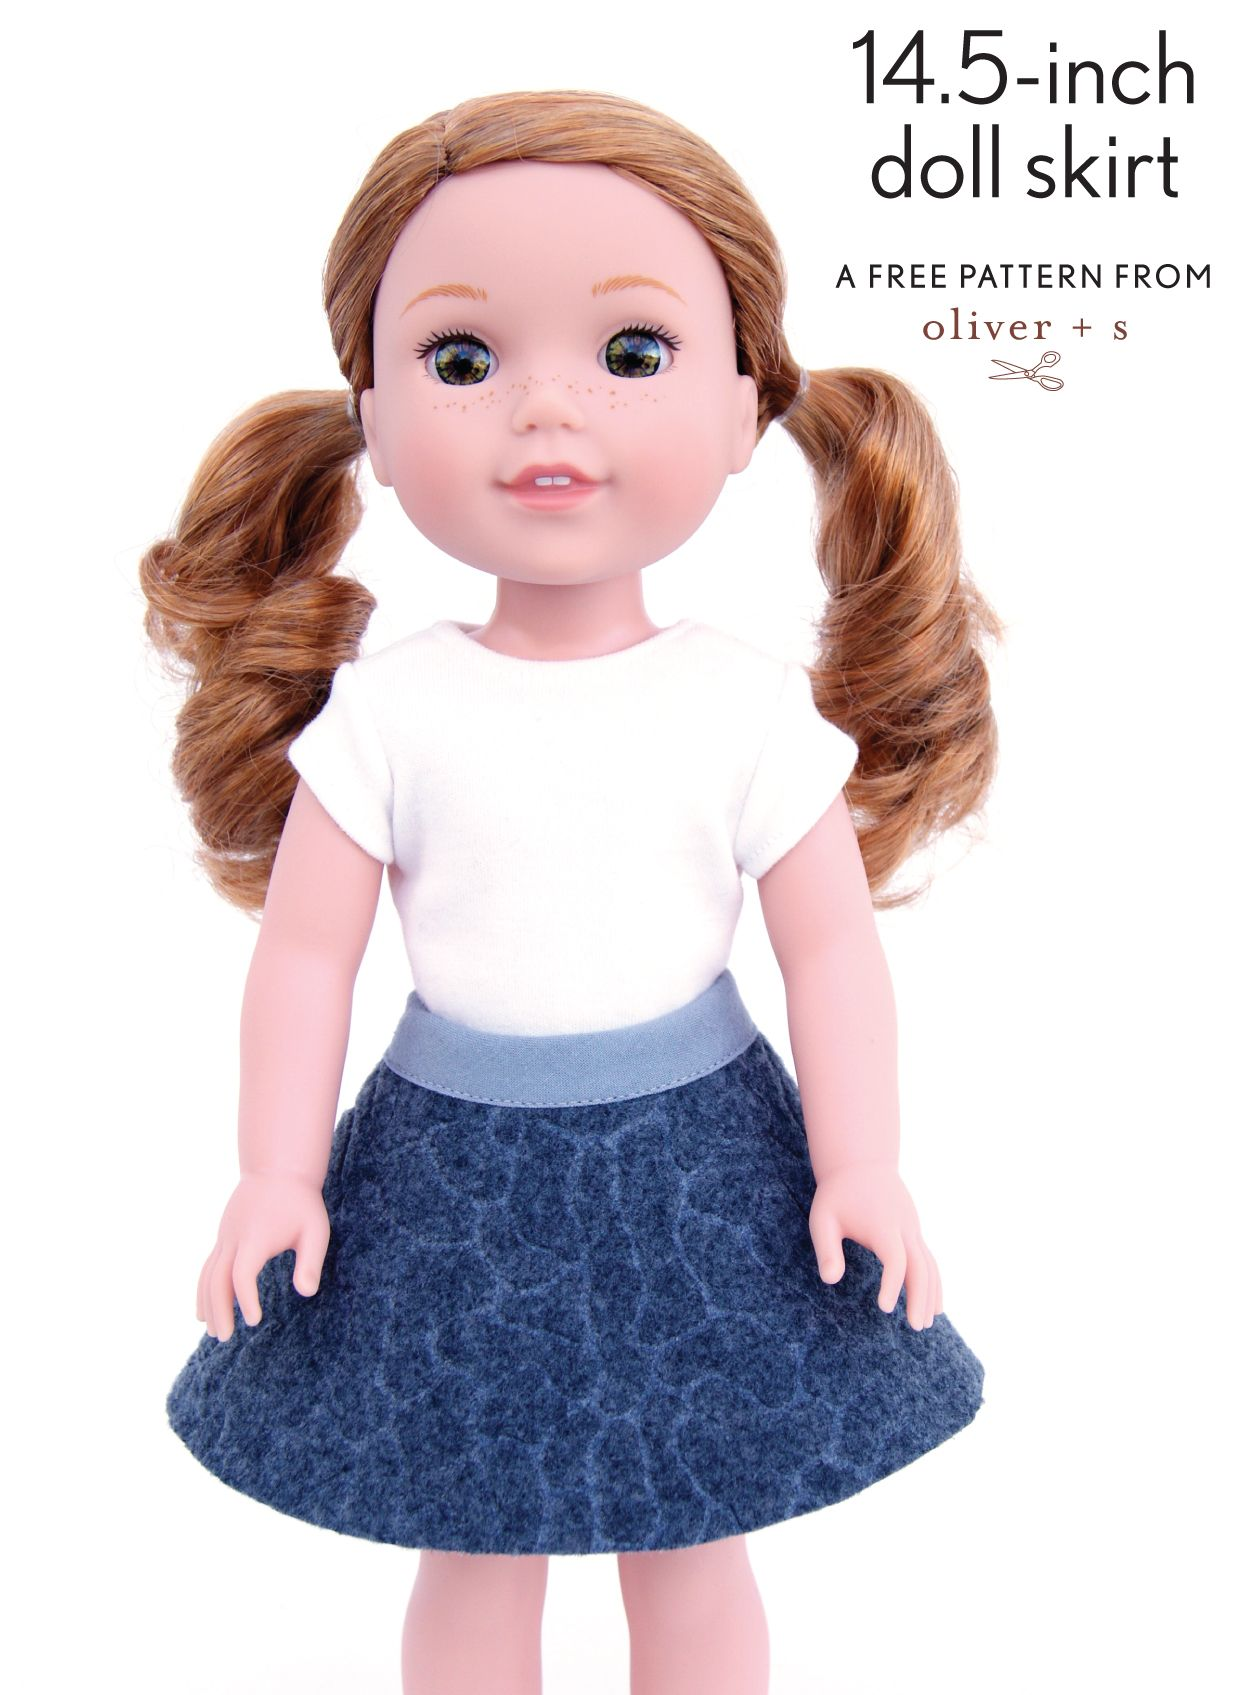 free pattern for 13- and 14.5-inch doll skirts in 2018 | Sewing ...